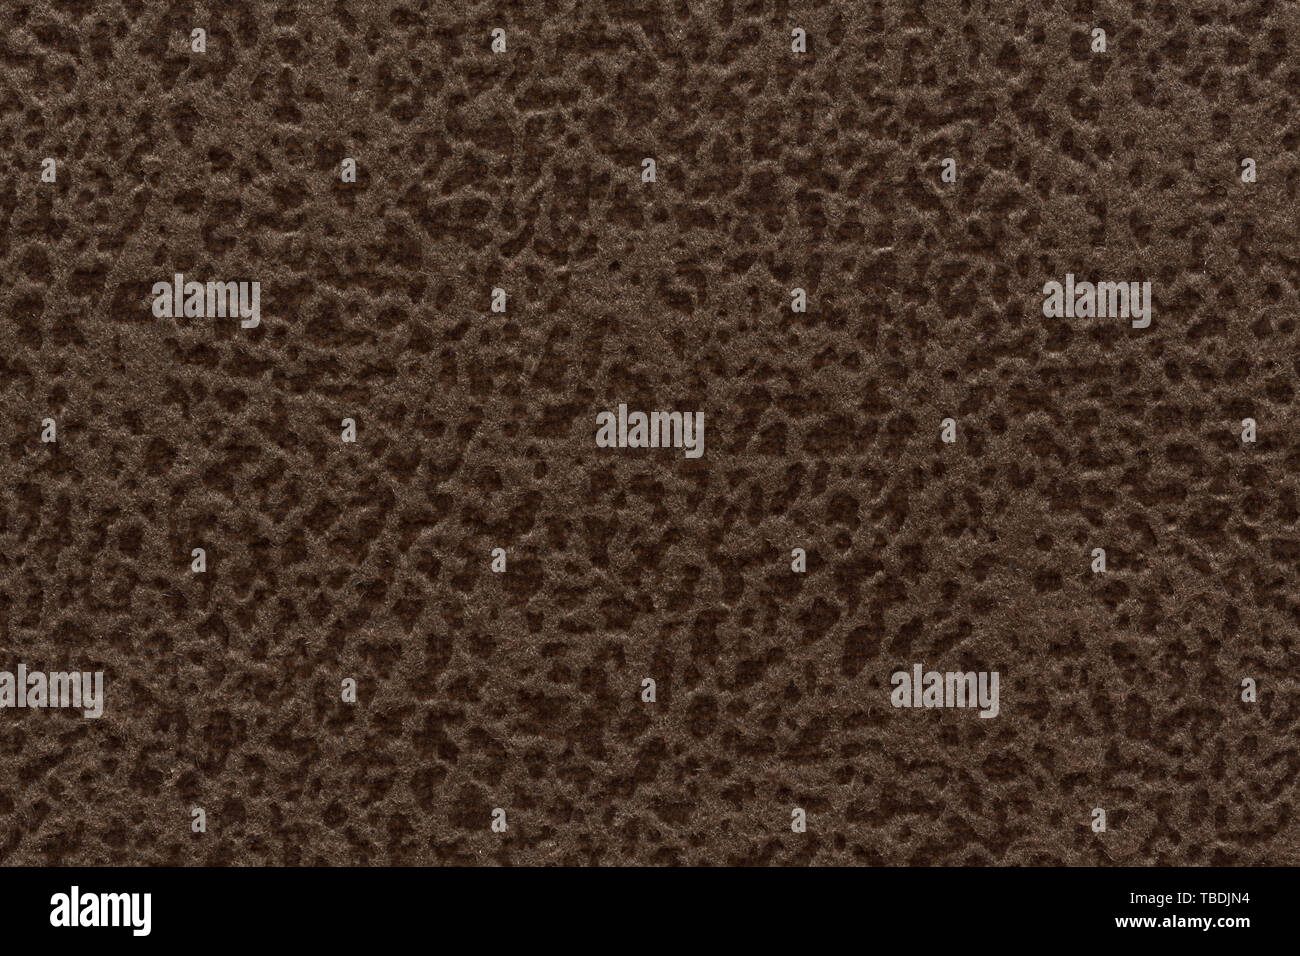 Marvelous textile background with speckled brown surface. High resolution photo. - Stock Image